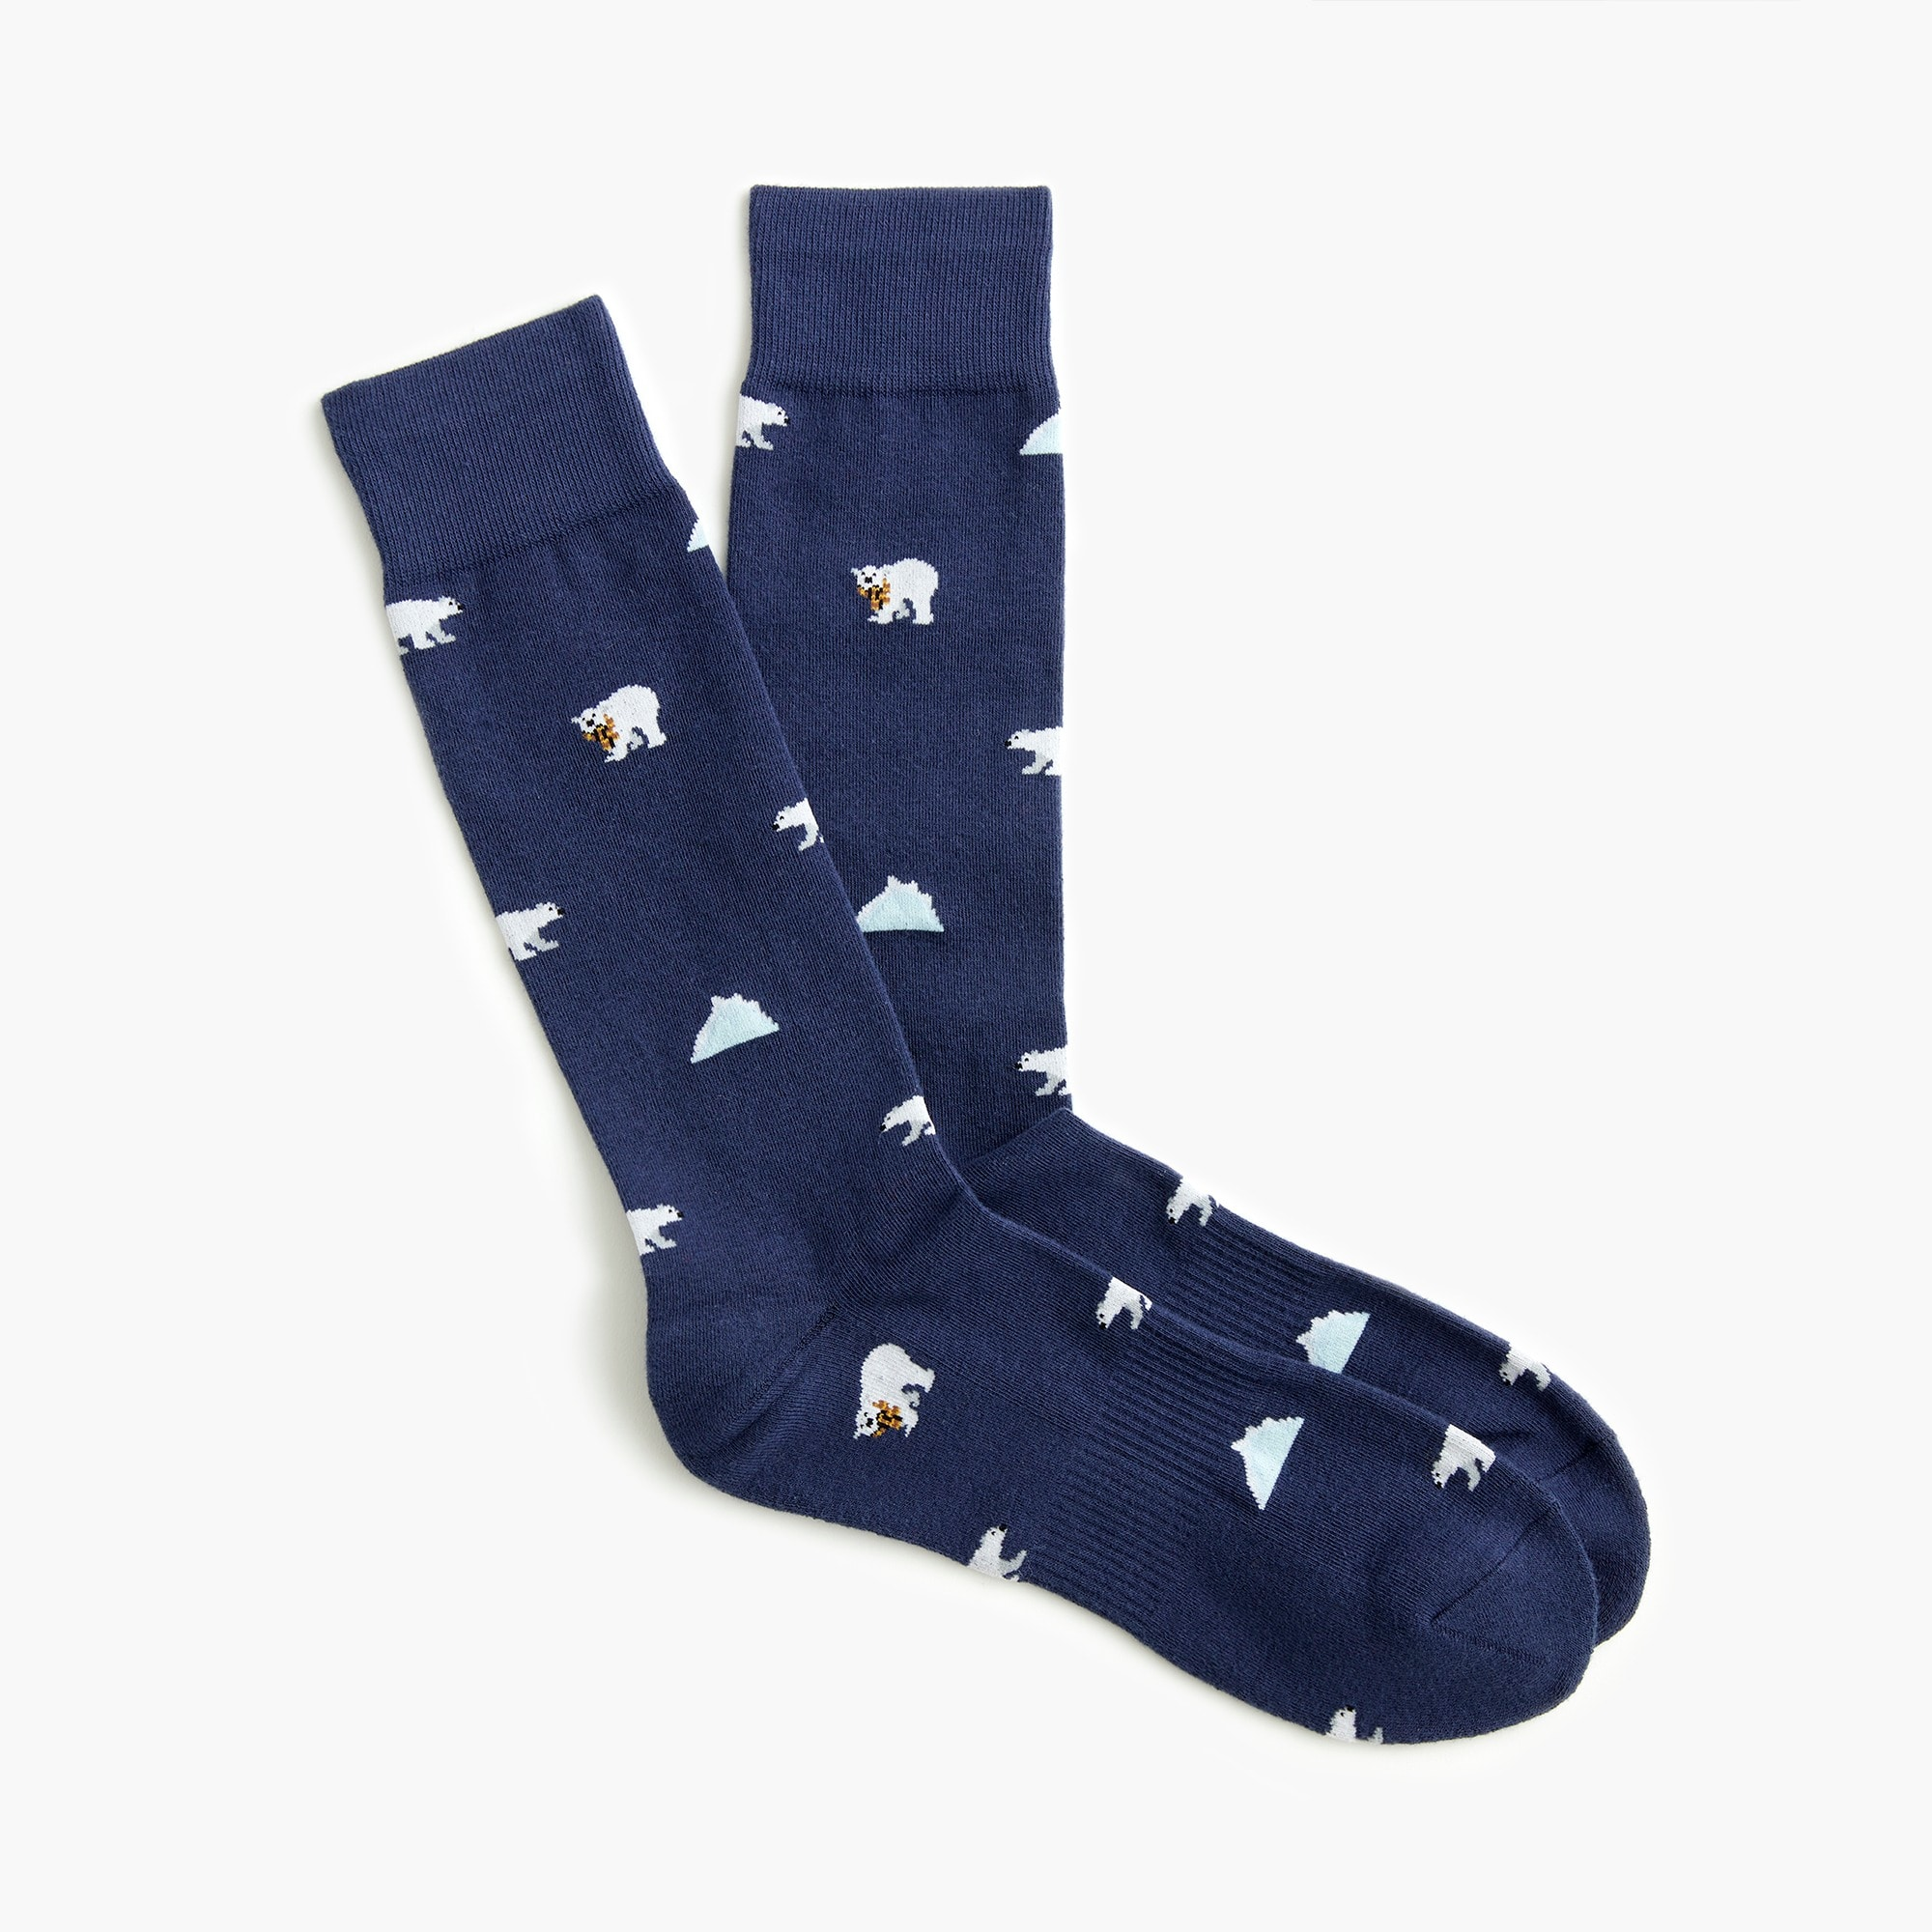 polar bear print padded footbed socks : men for getting cozy